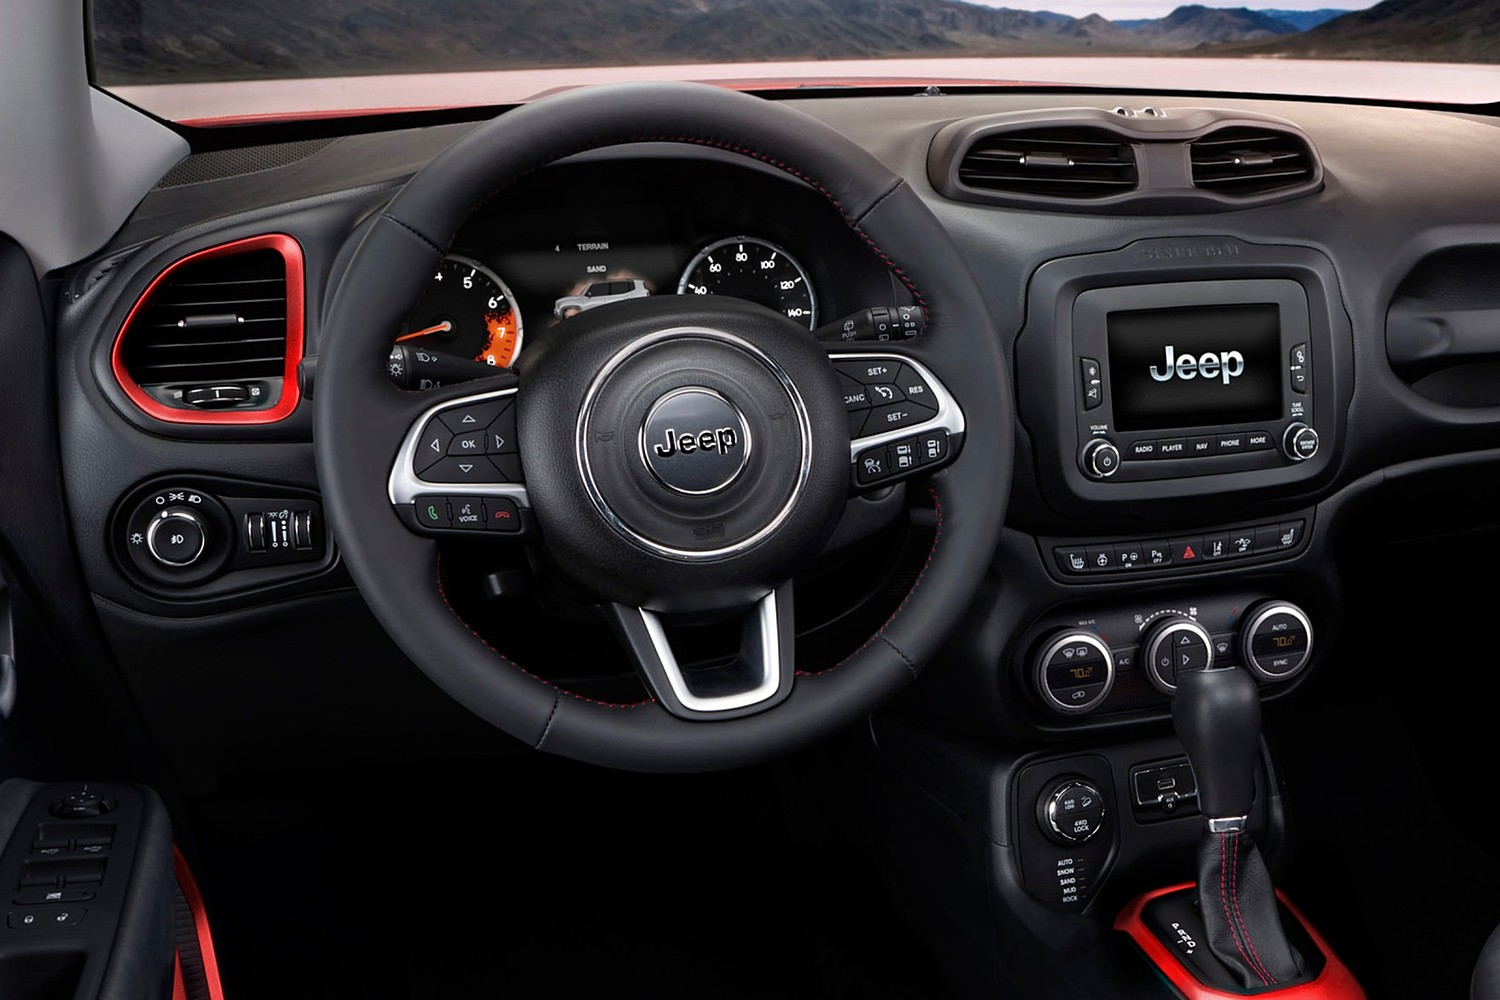 Jeep Renegade Trailhawk 4dr SUV Steering Wheel Detail (2016 model year shown)